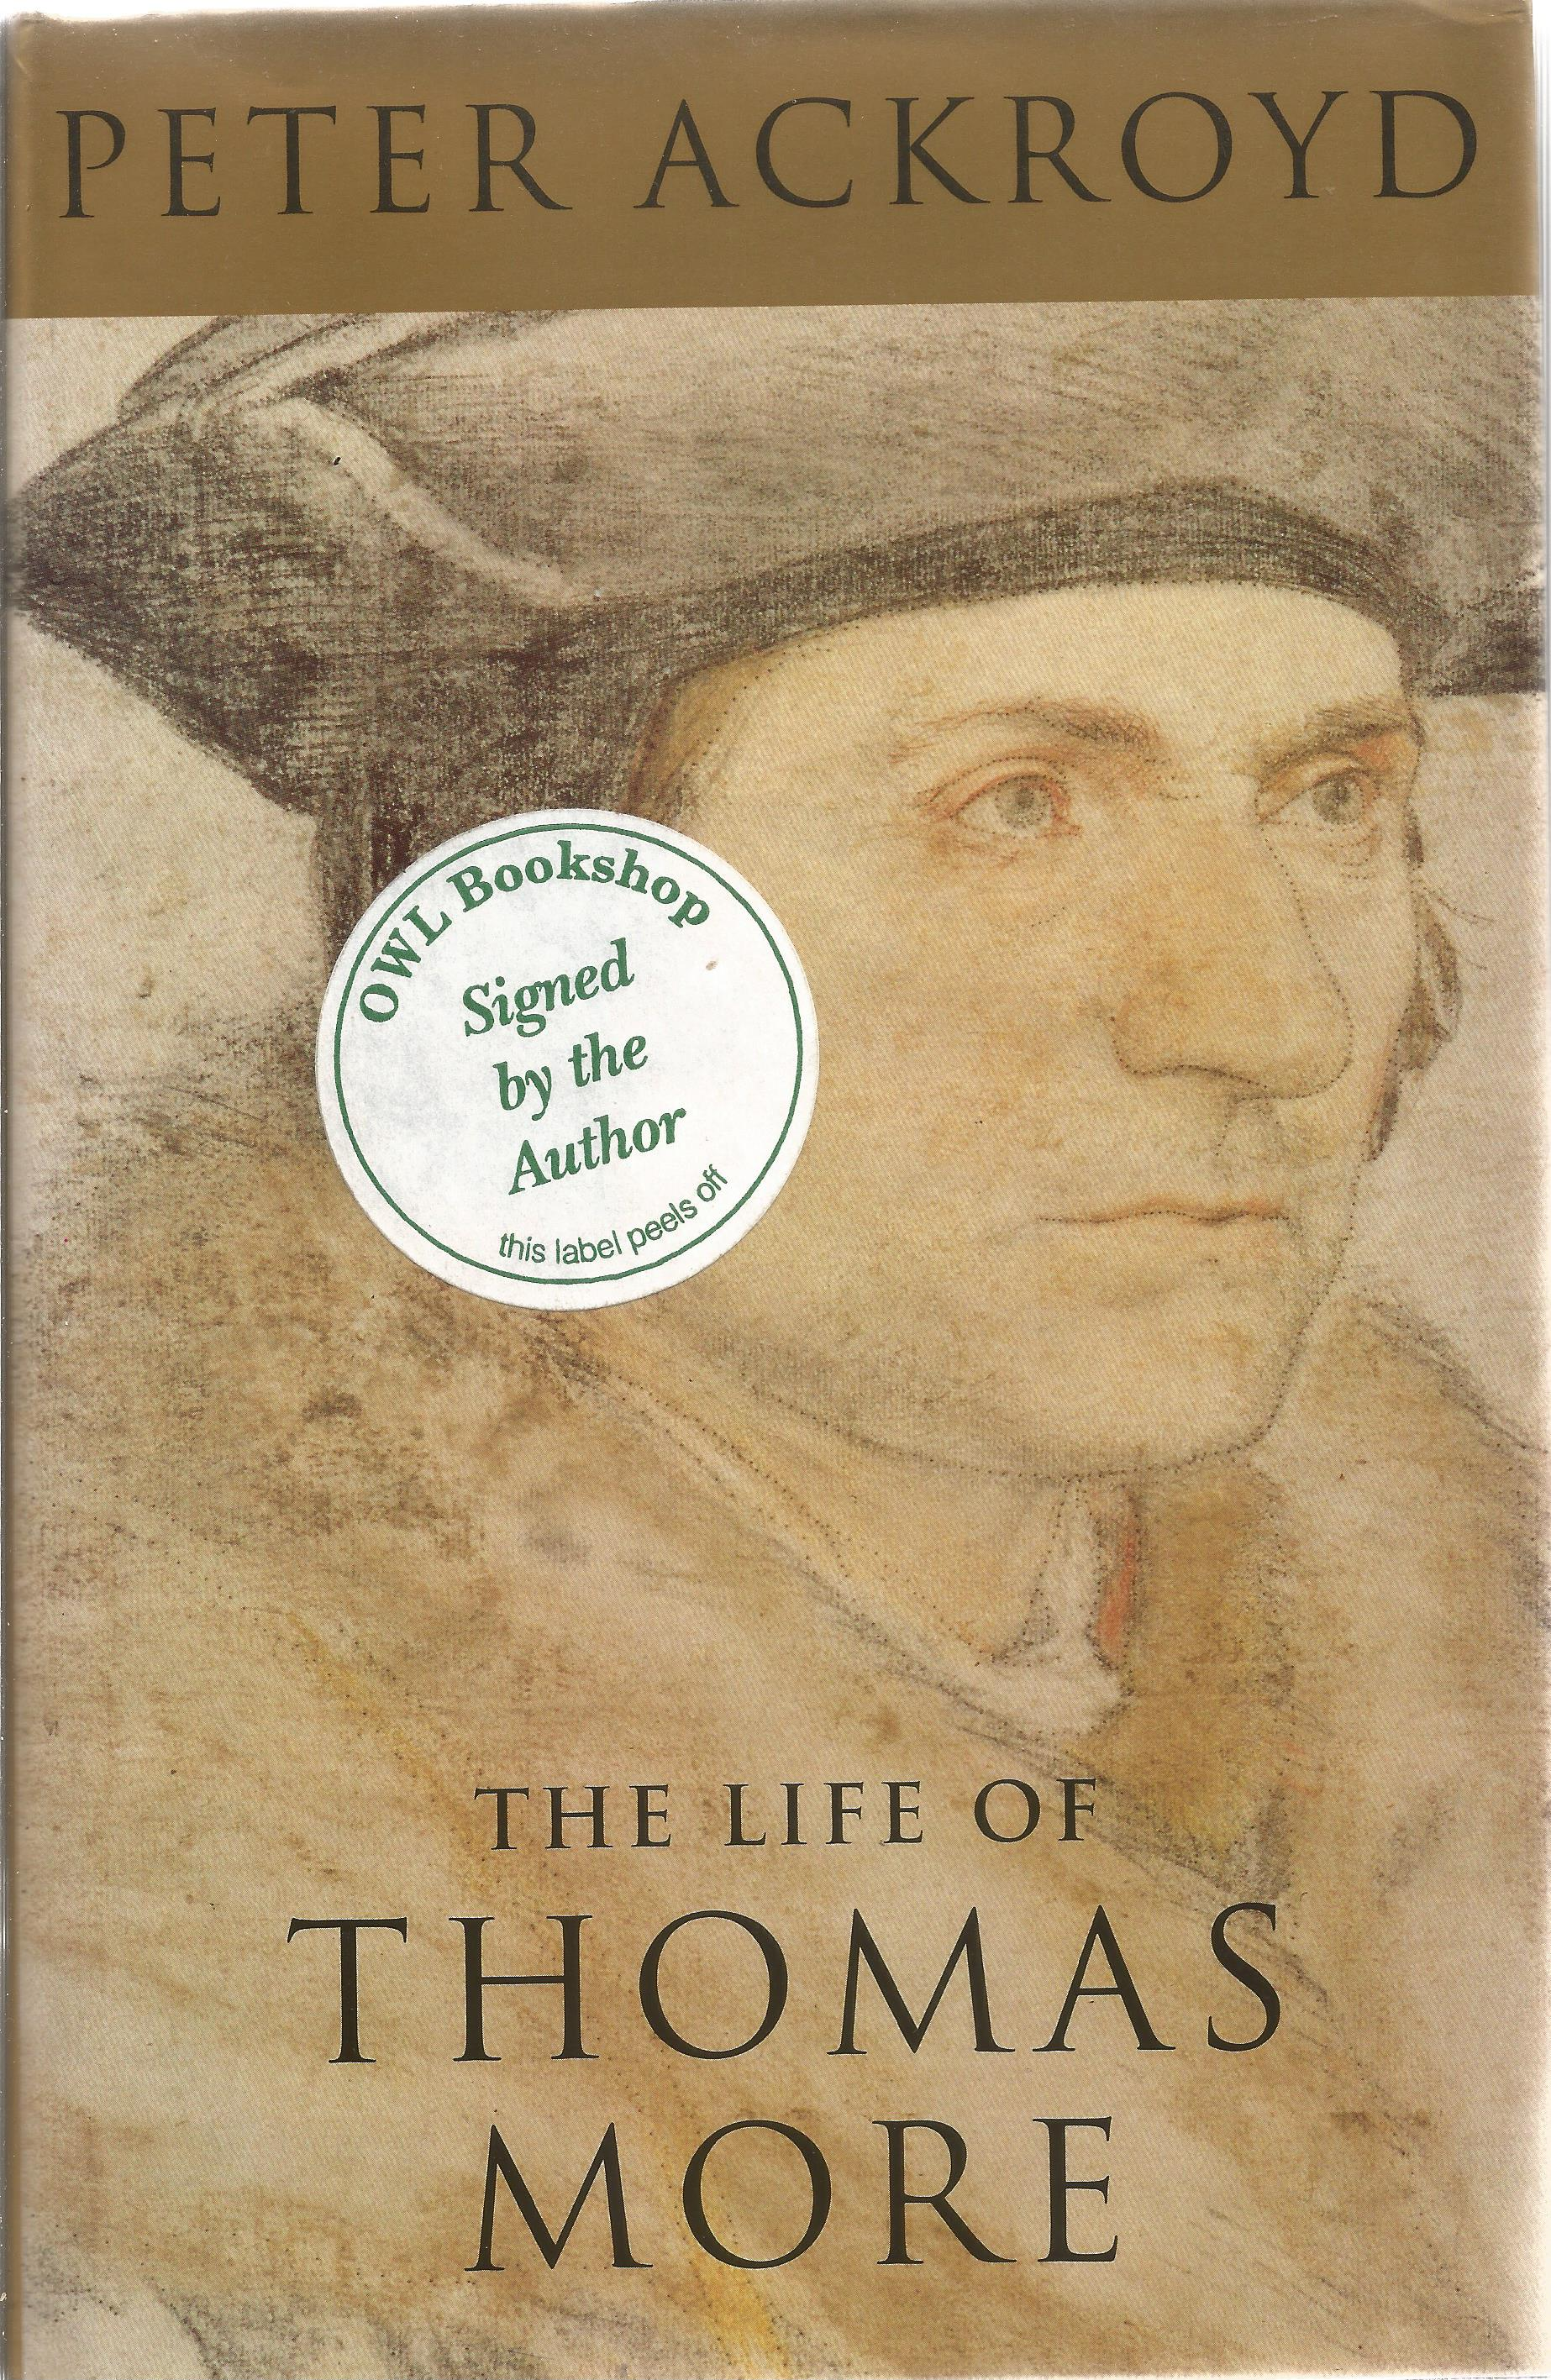 Peter Ackroyd Hardback Book The Life of Thomas More signed by the Author on the Title Page First